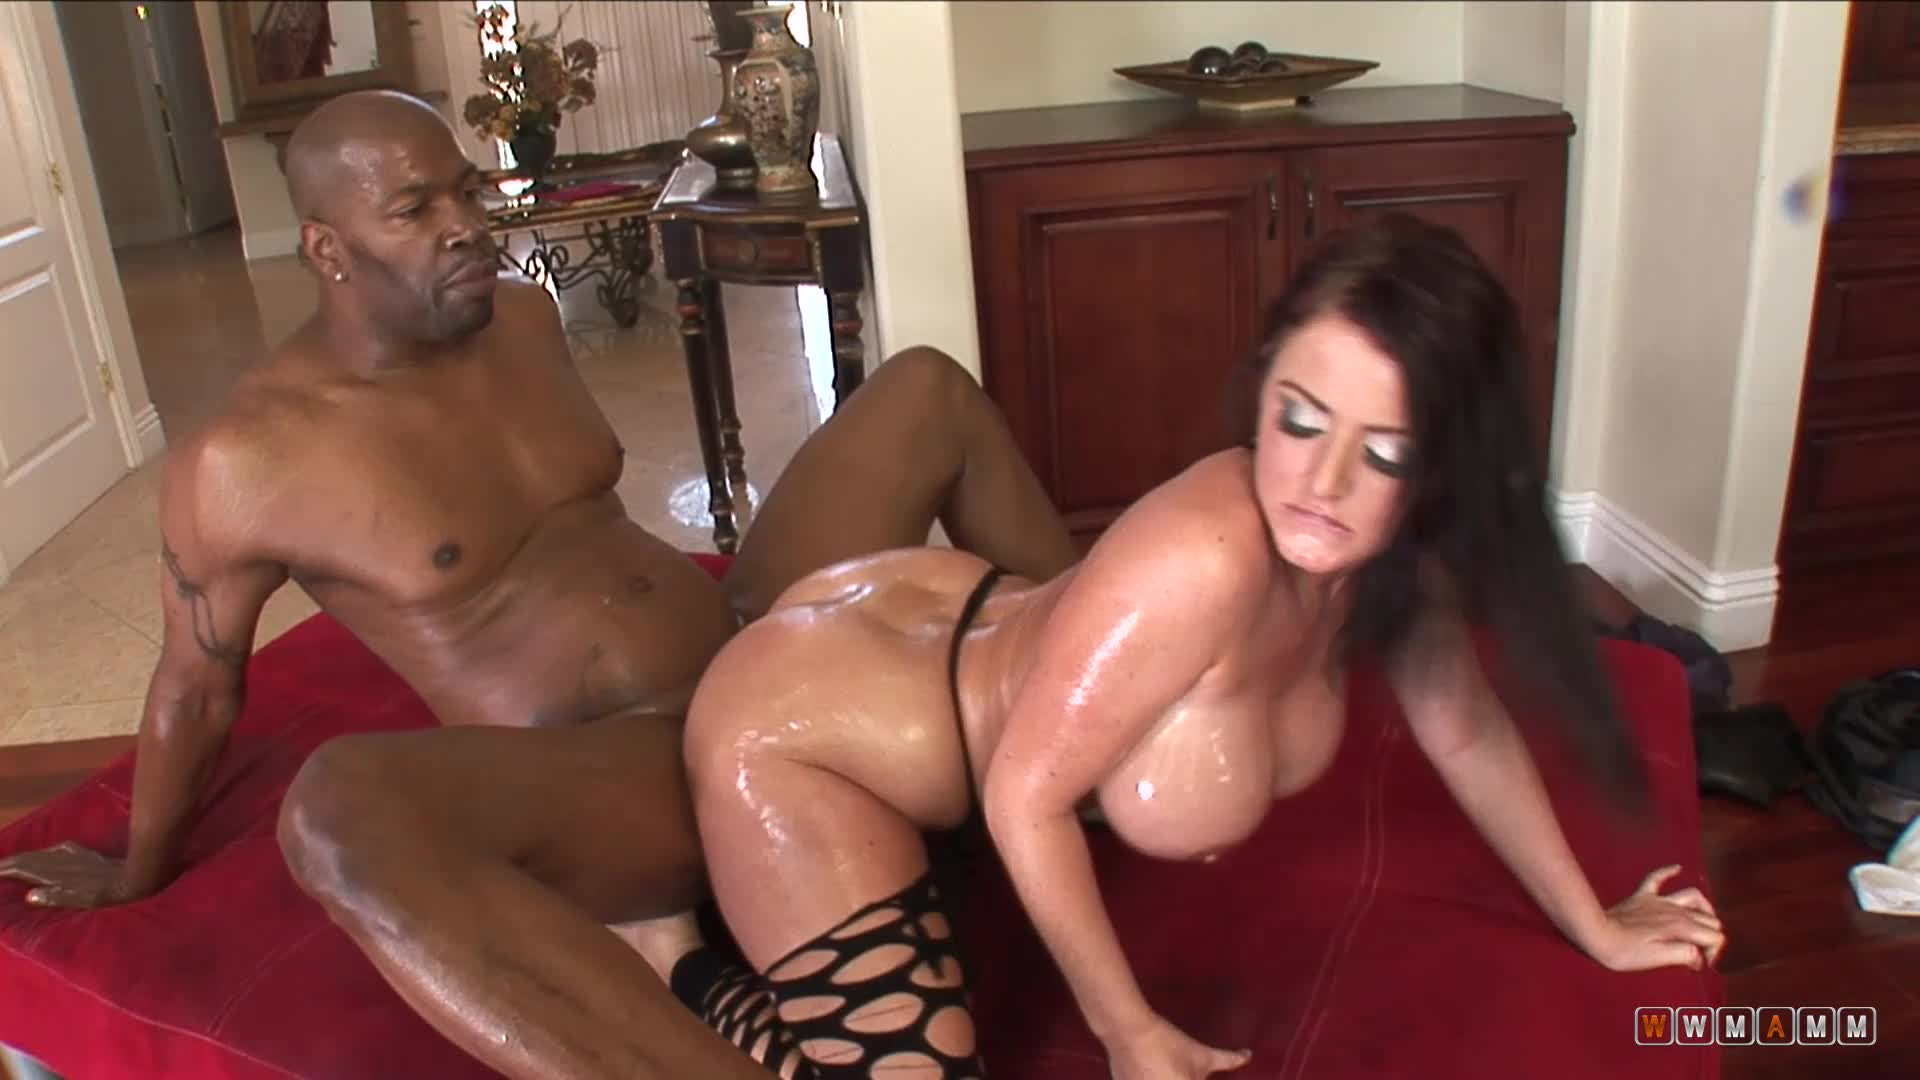 She Needed Some Oil On That Big Fat Cock To Be Able To Take It